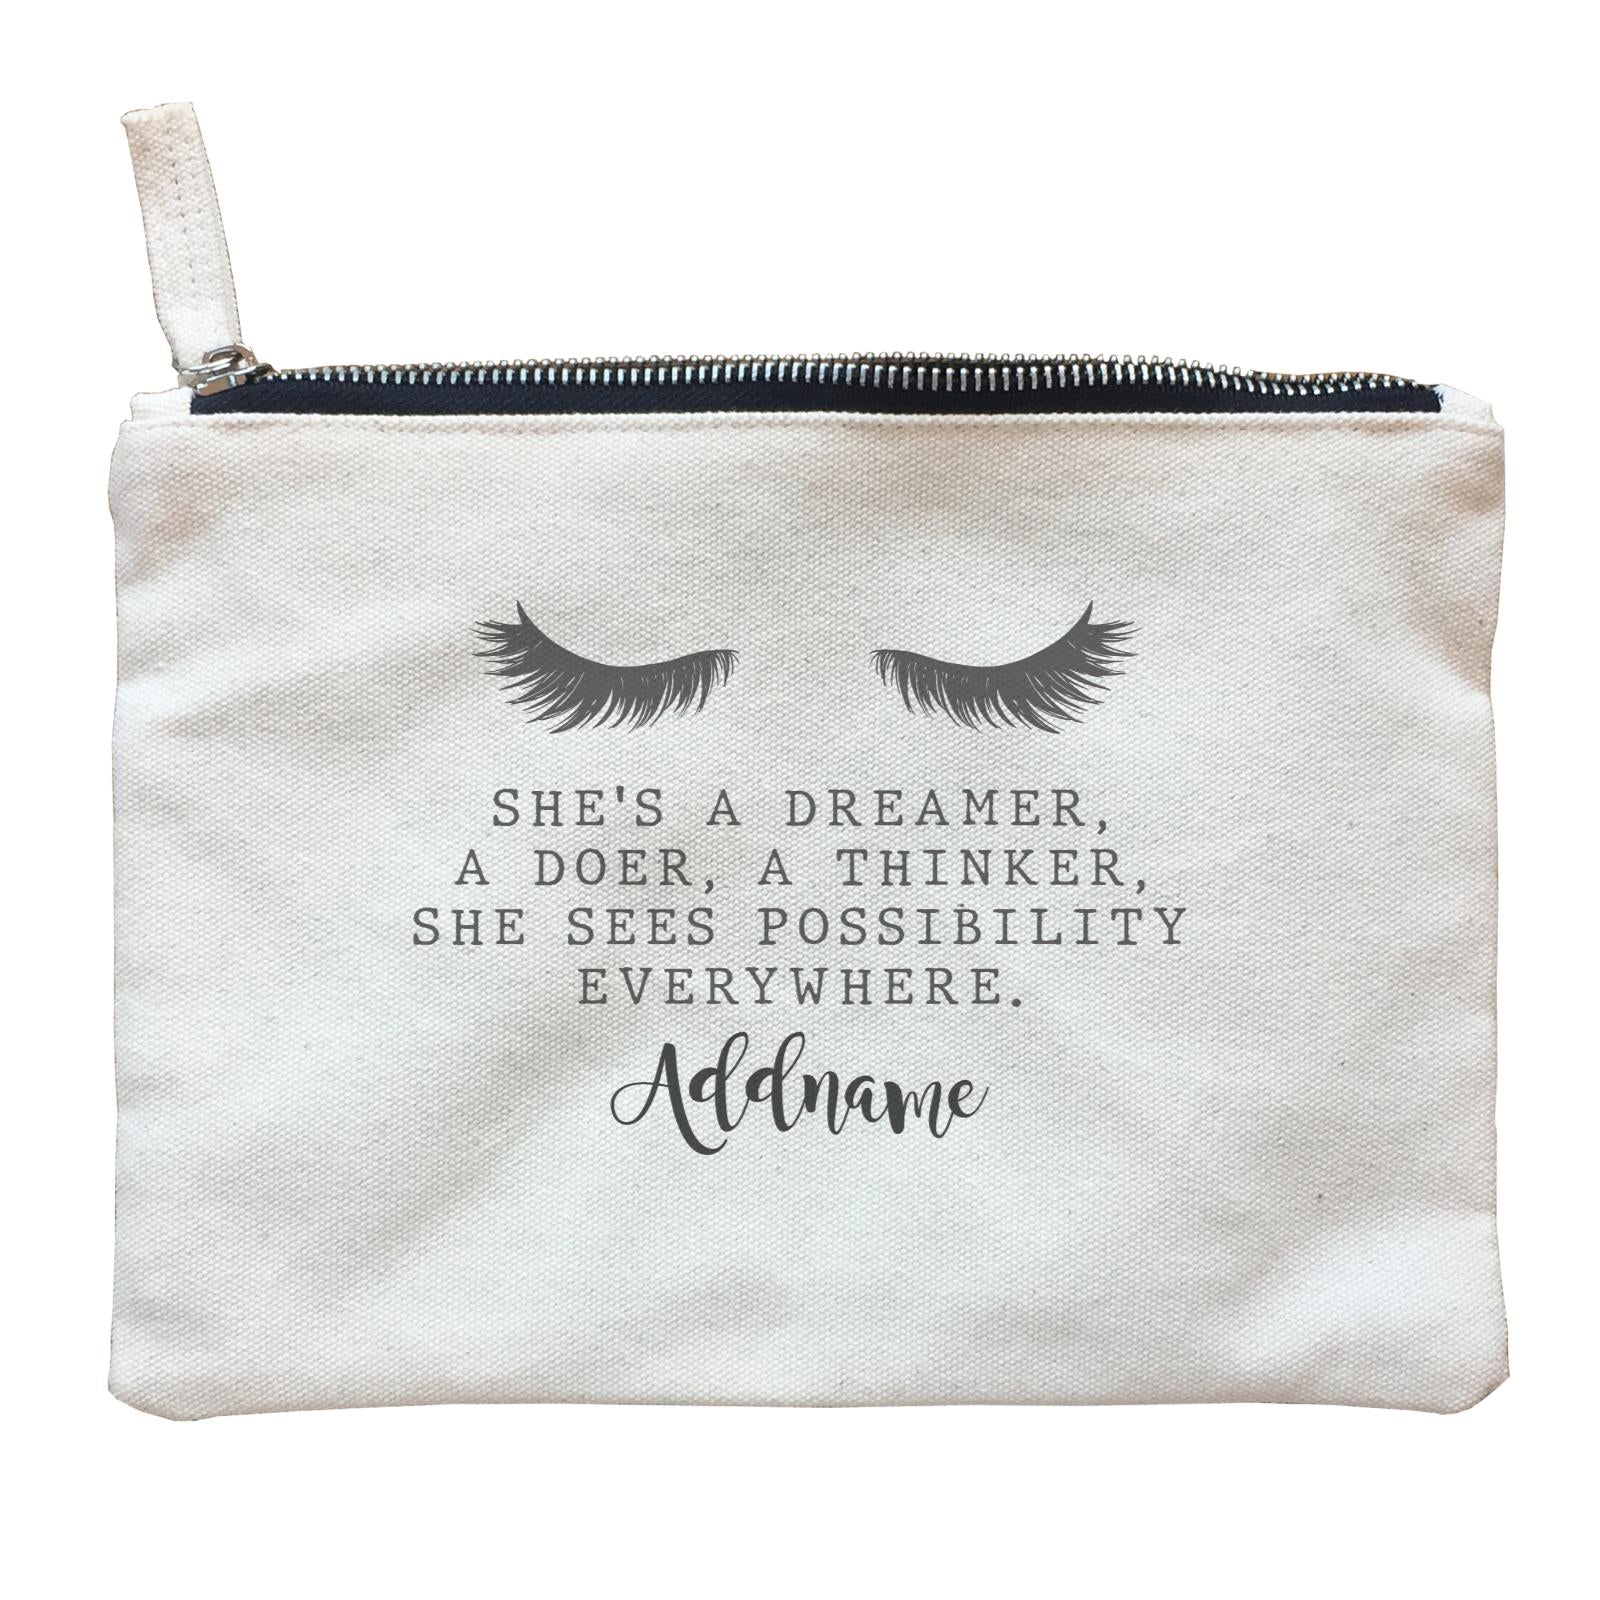 Make Up Quotes She's A Dreamer A Doer A Thinker Addname Zipper Pouch